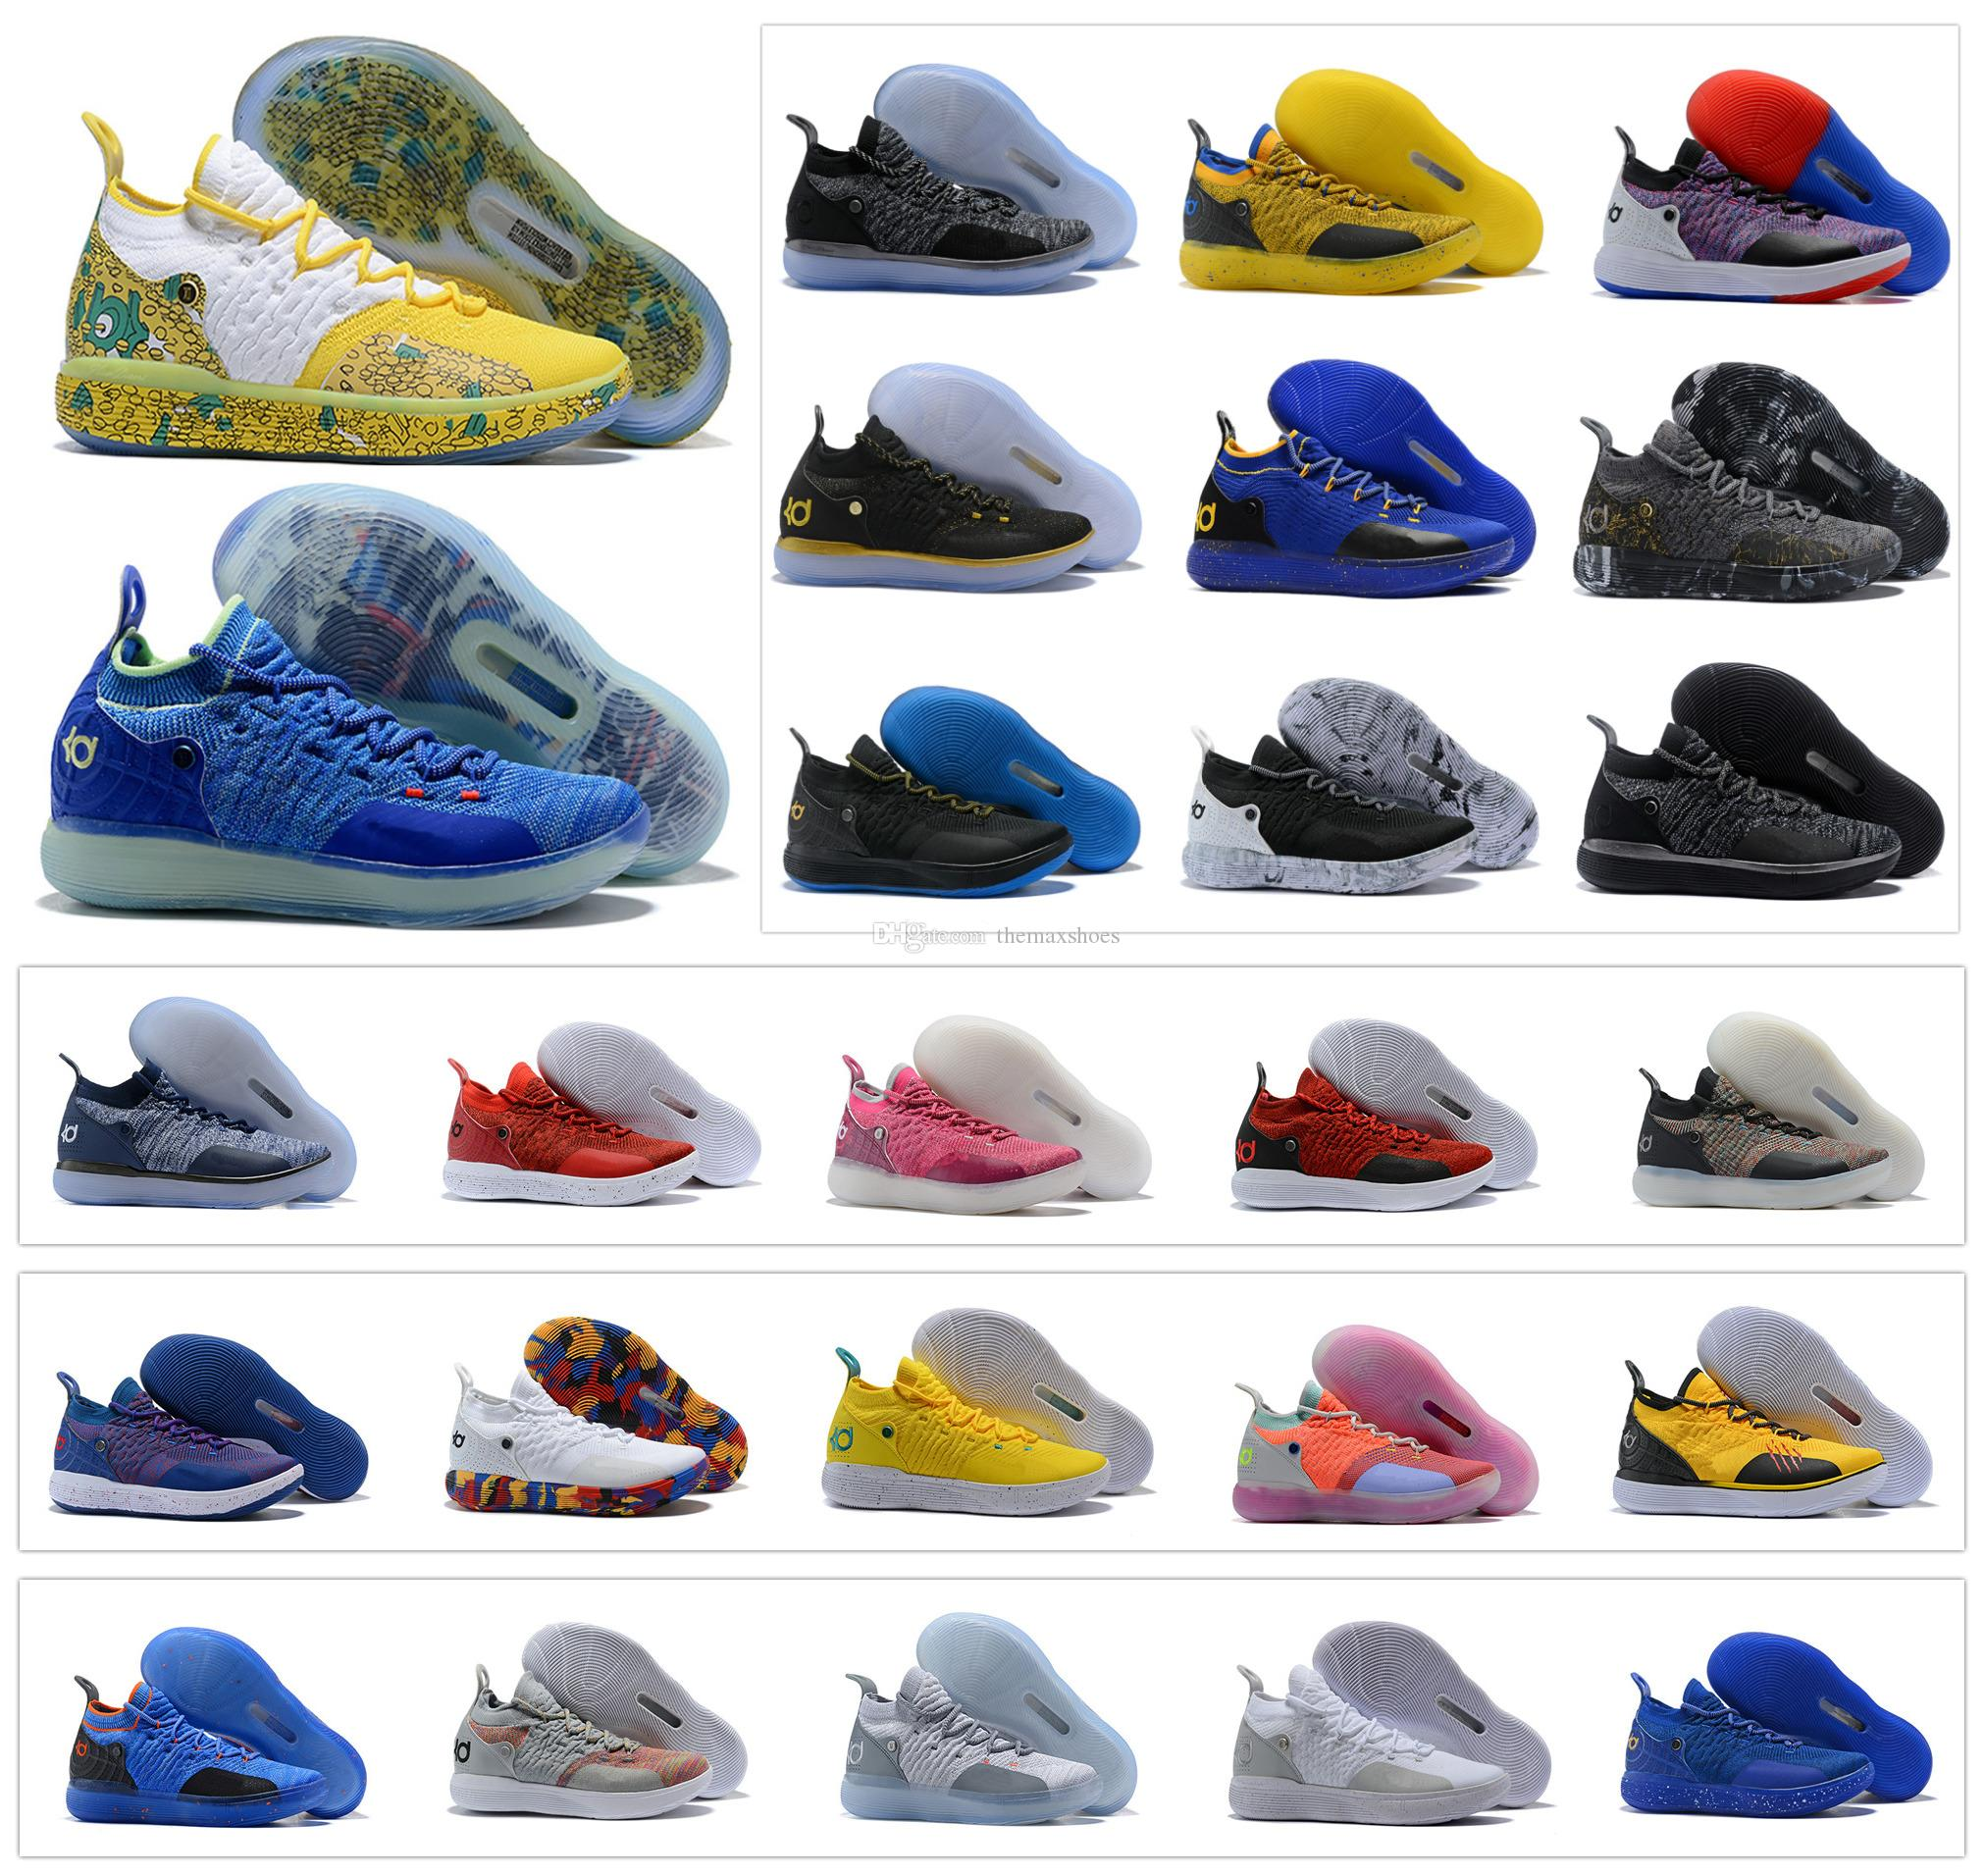 85c6a2d6a11c Hot Zoom Kevin Durant KD 11 Multi Color KD11 11S Numbers BHM Igloo Men  Anniversary University Basketball Shoes X Elite Mid Sport Sneakers Shoes  Sneakers ...